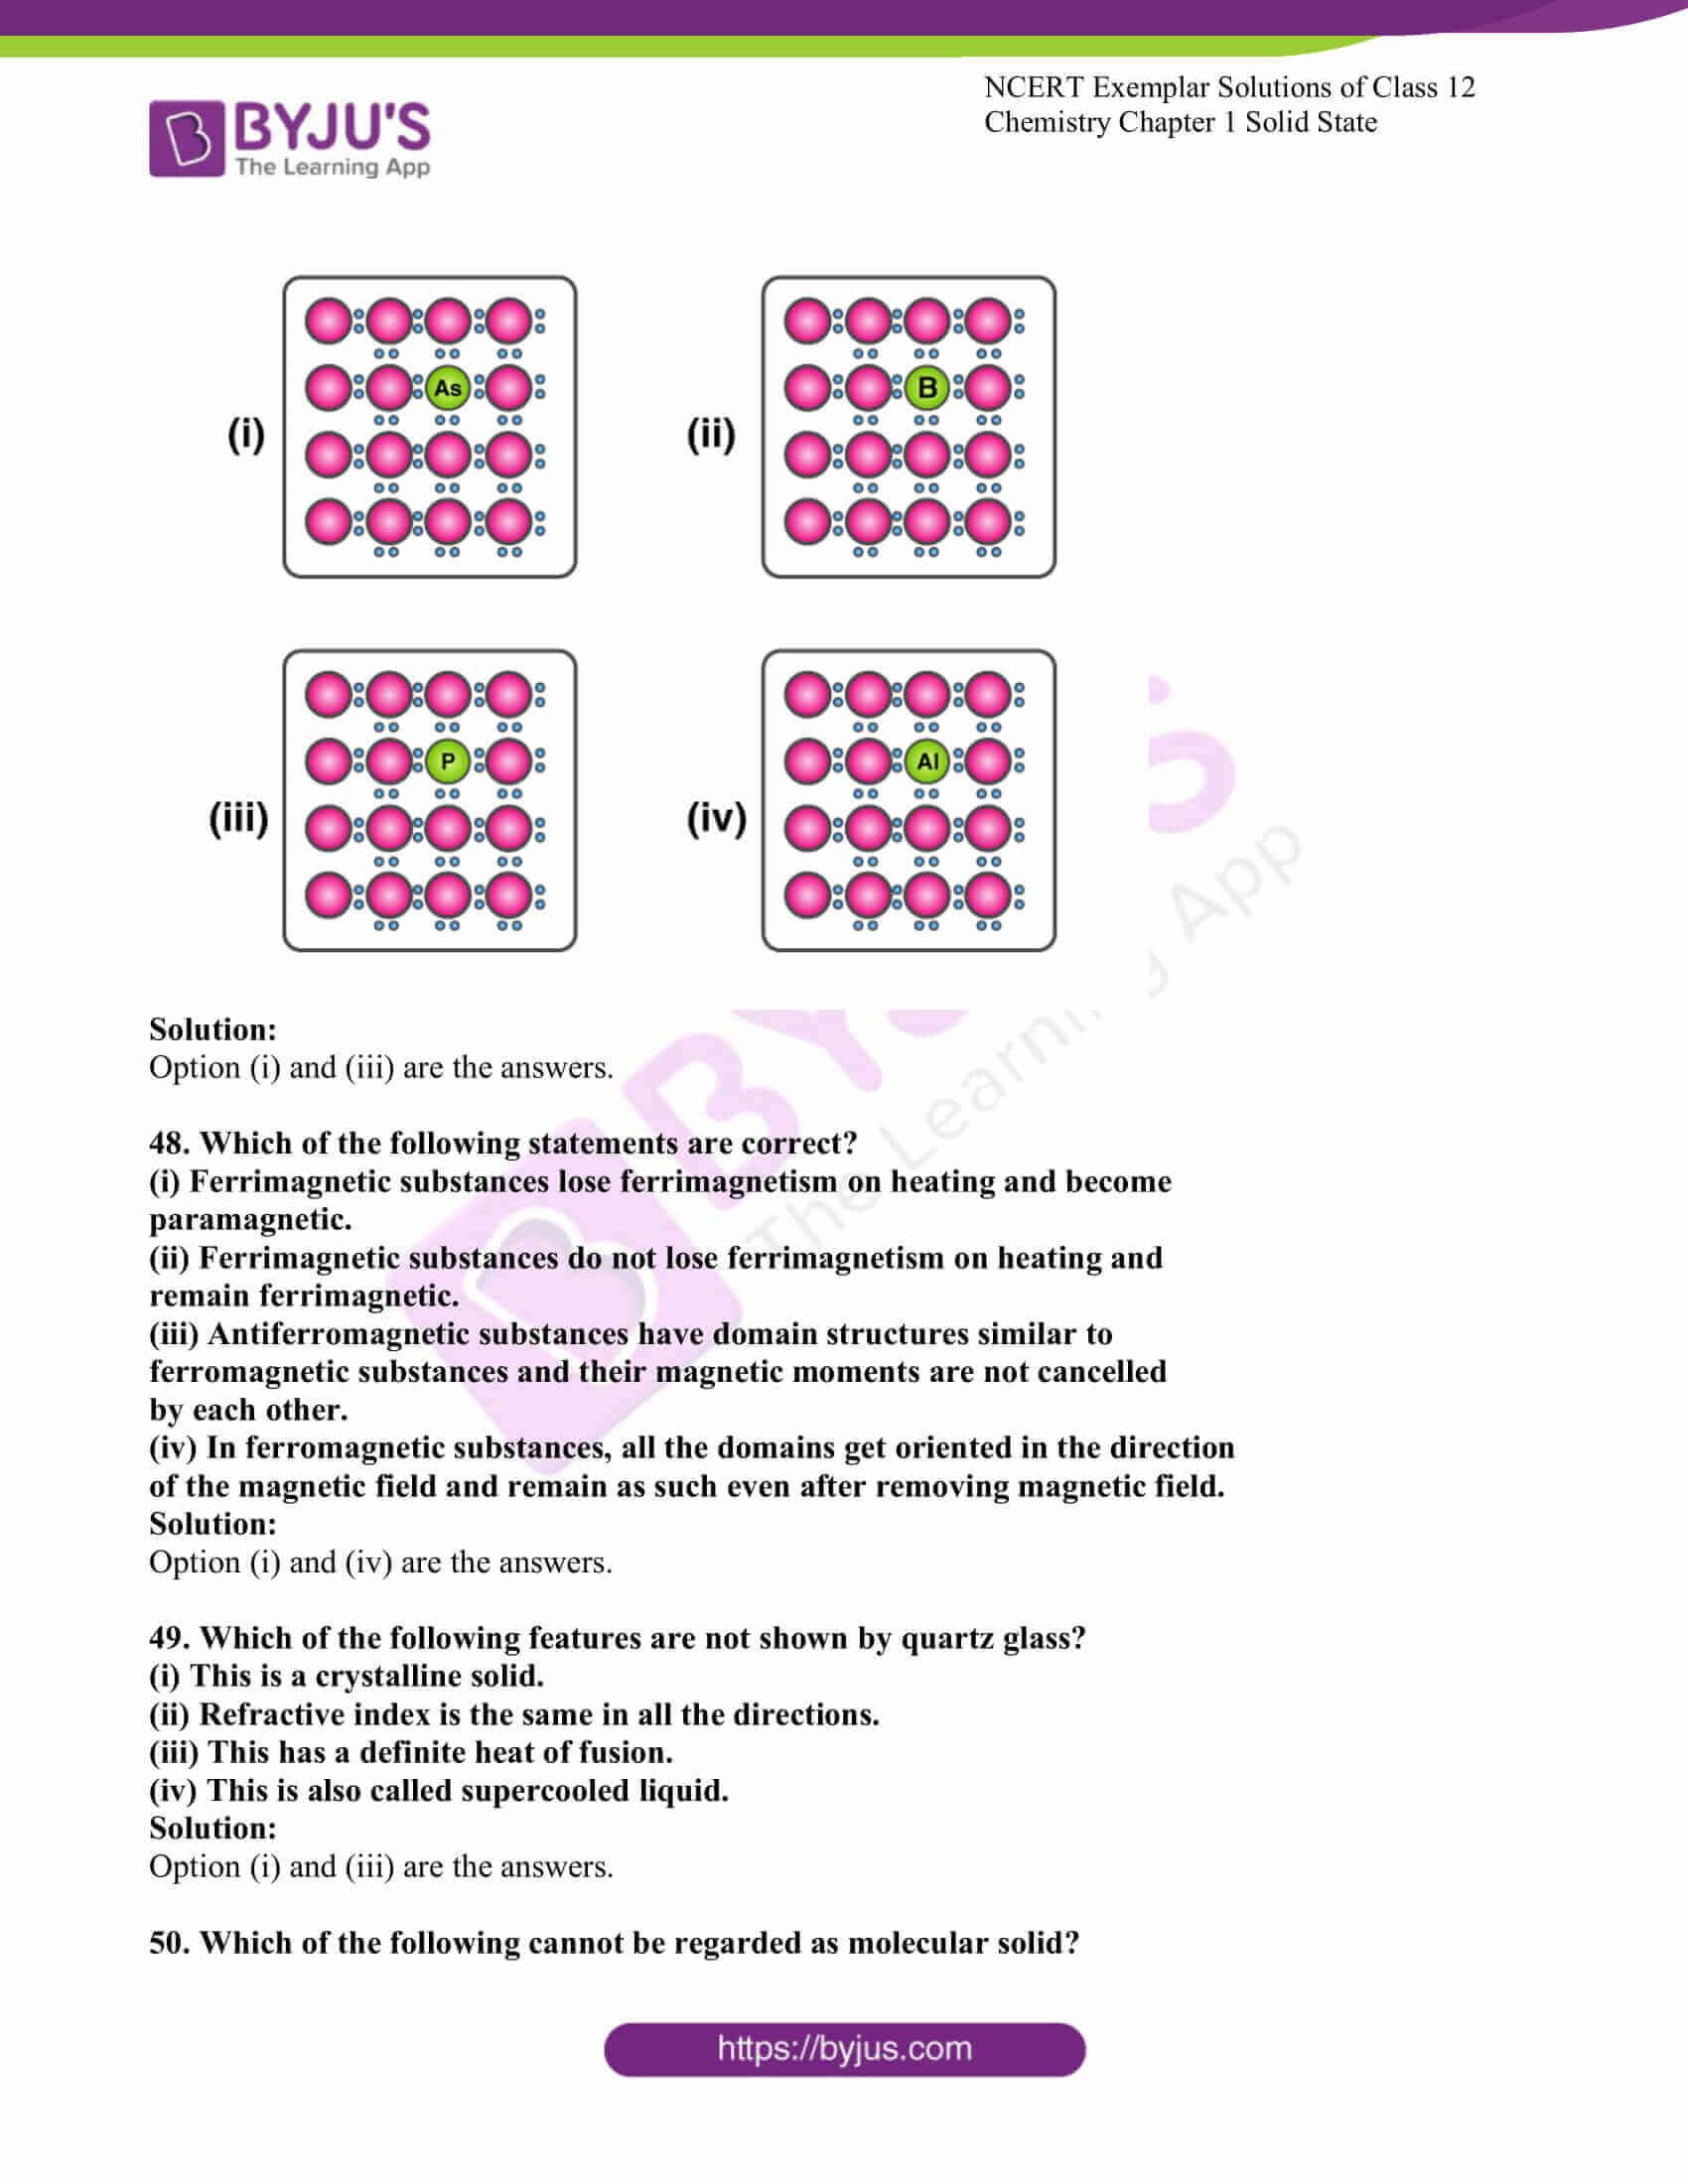 ncert exemplar solutions for class 12 chemistry chapter 1 solid 11